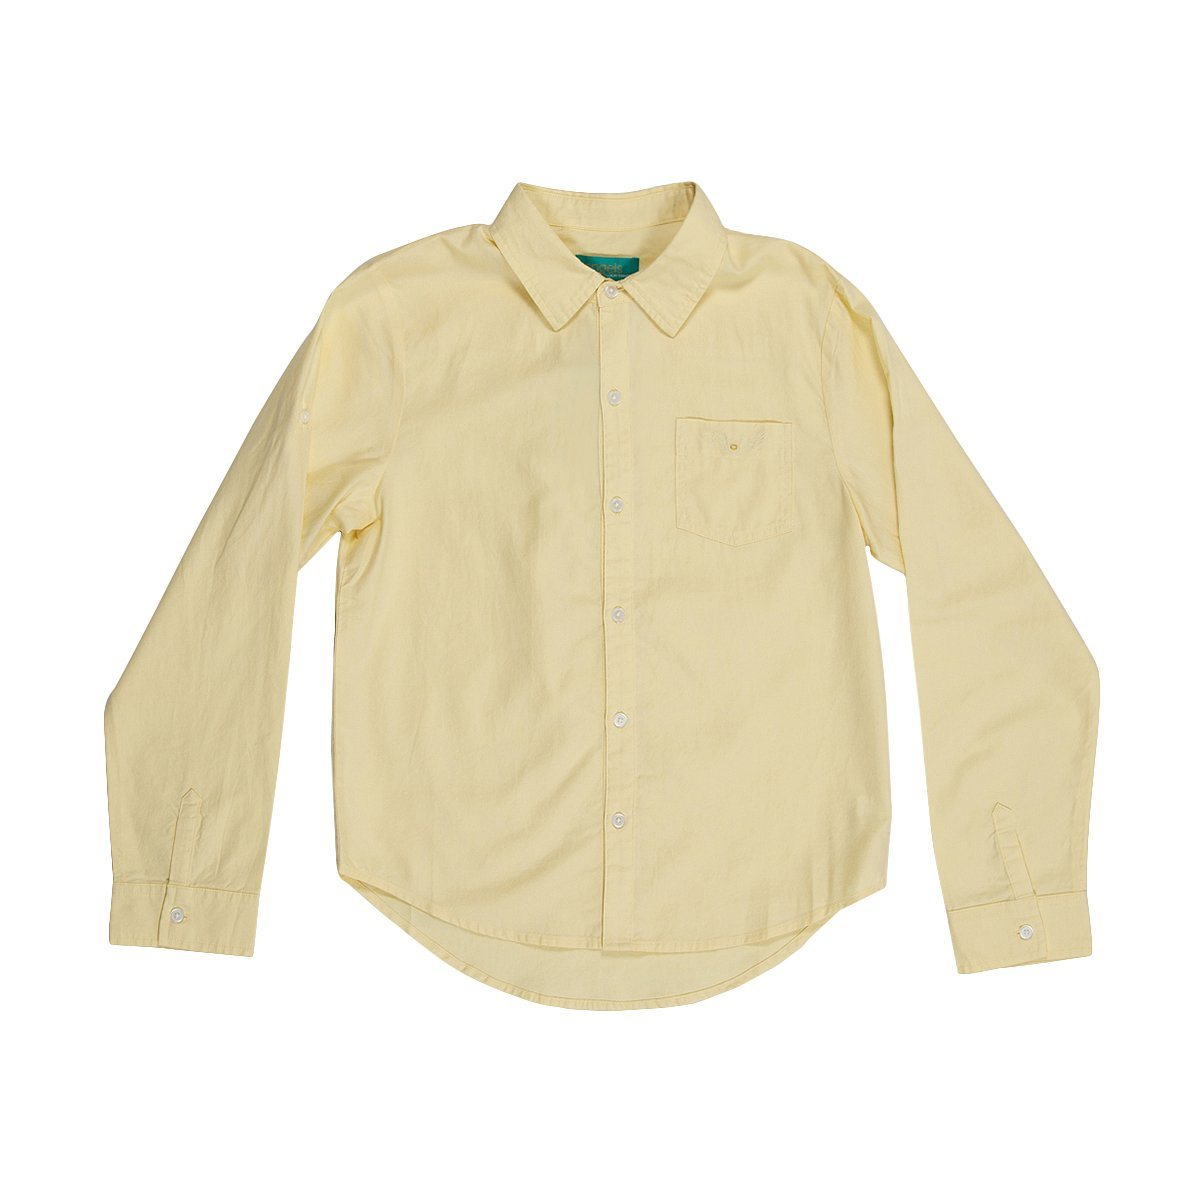 Angels Luxury Kidswear Oxford Shirt For Boys, Yellow